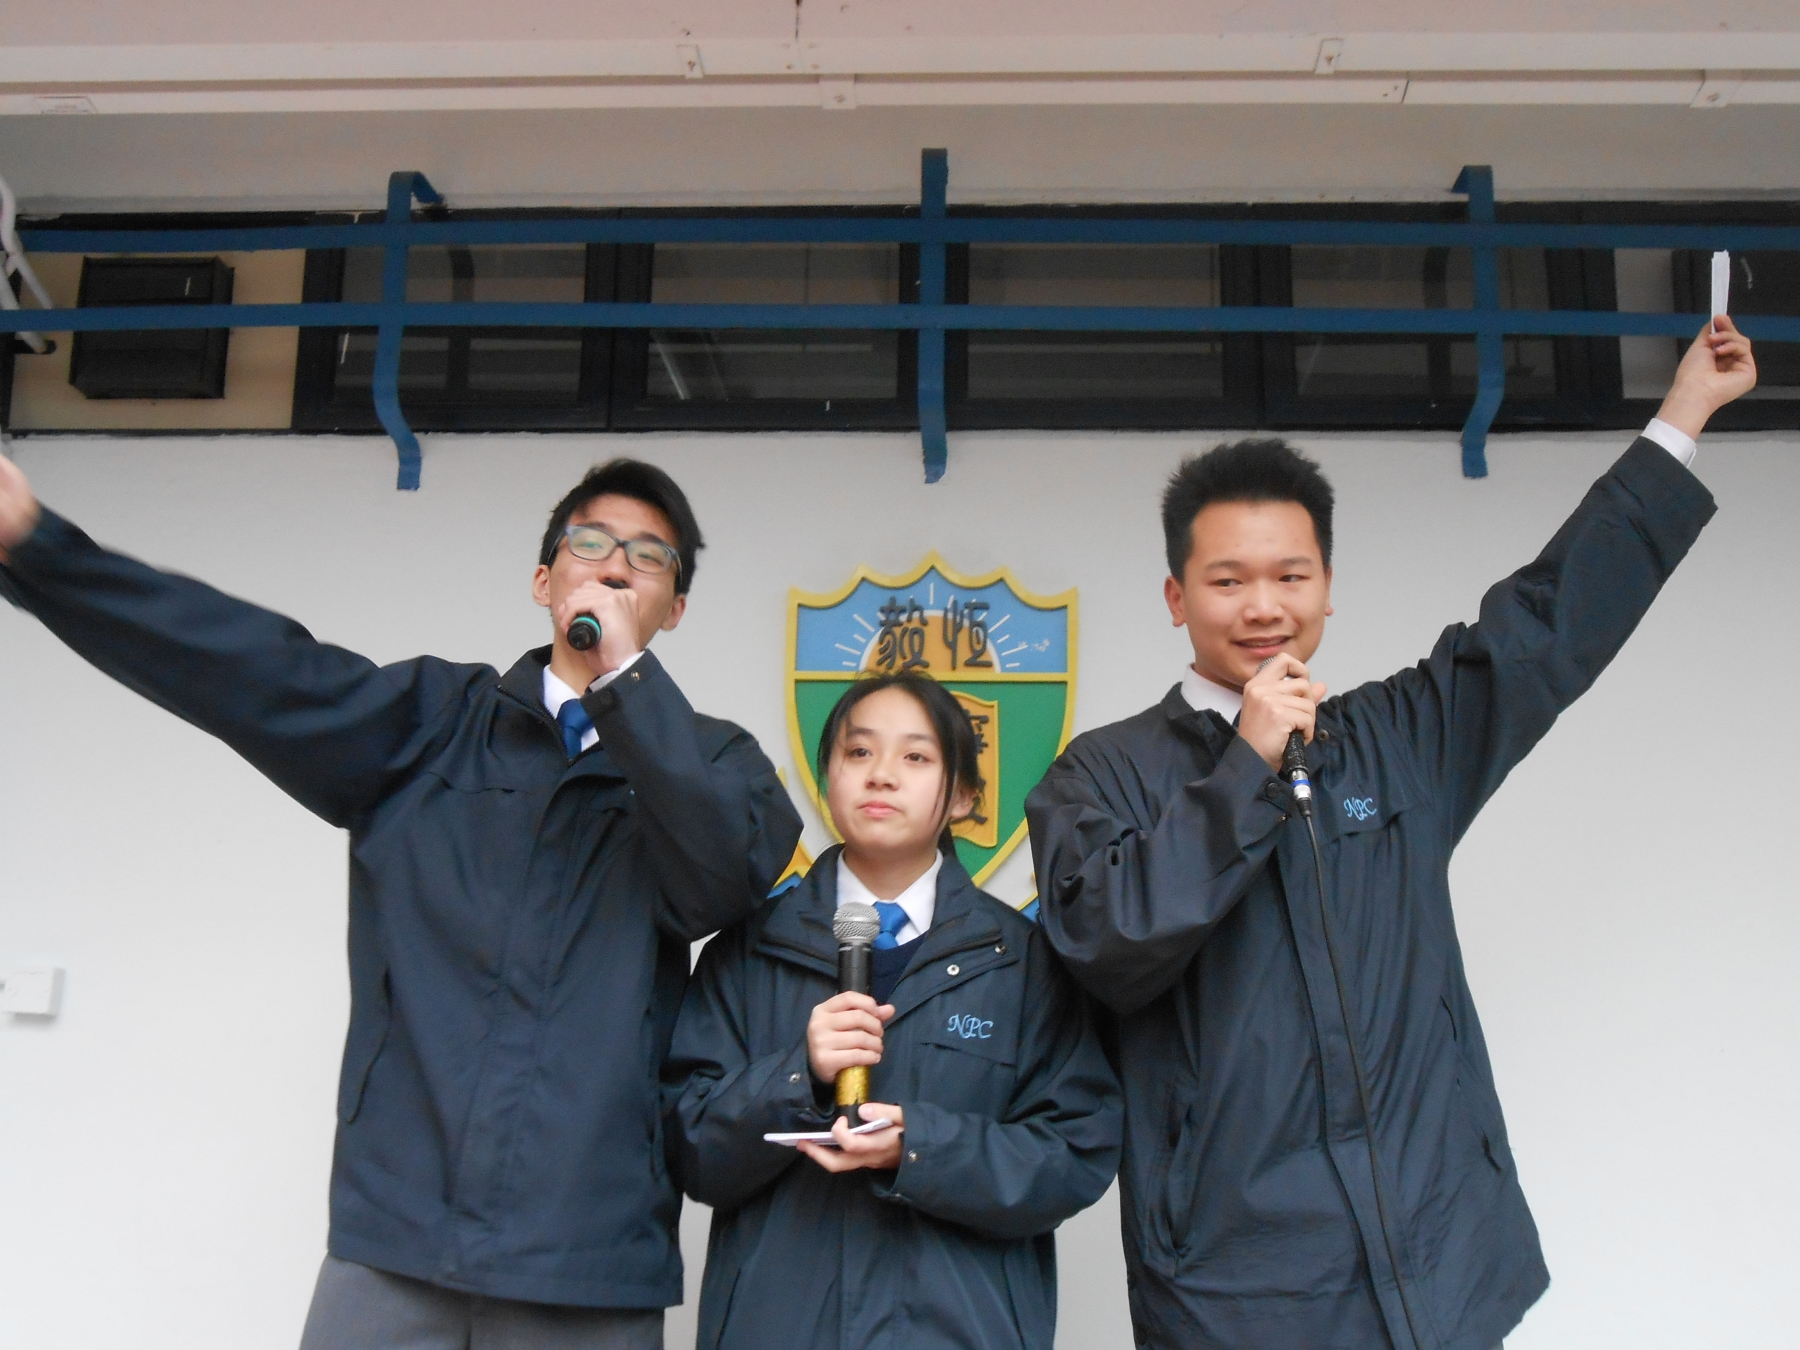 http://npc.edu.hk/sites/default/files/dscn8937.jpg